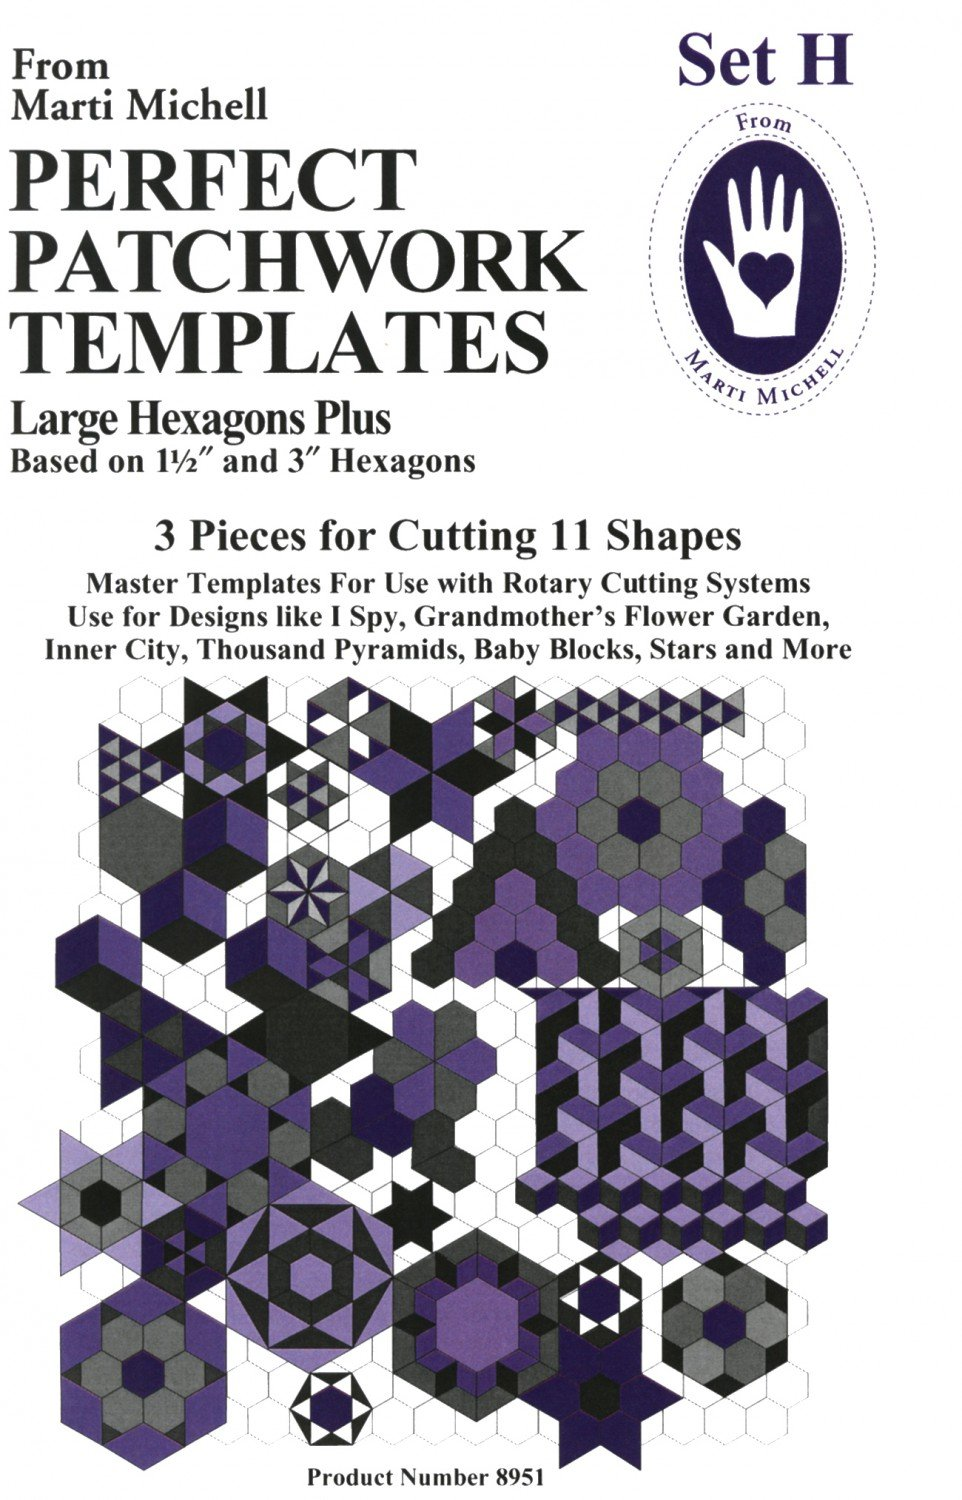 Perfect Patchwork Template Set H